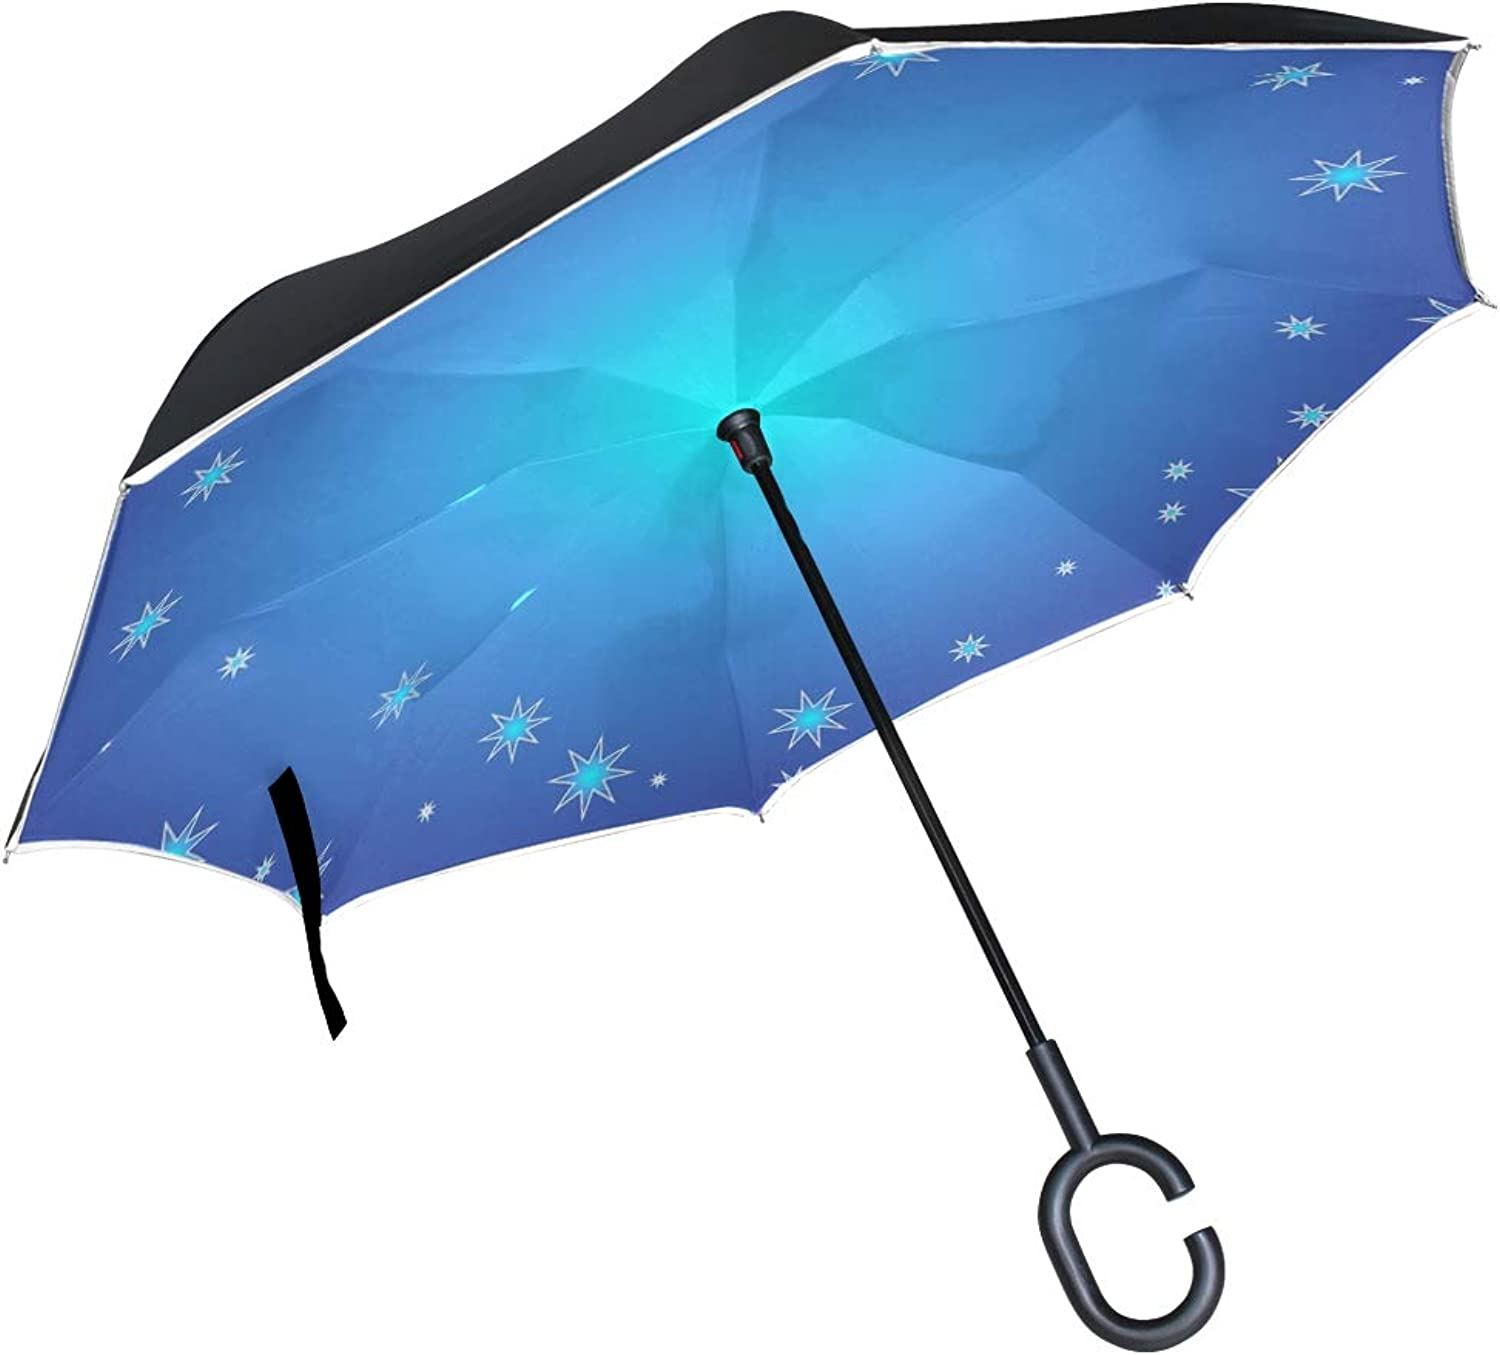 Double Layer Ingreened blueee Christmas Cold color Decoration Umbrellas Reverse Folding Umbrella Windproof Uv Predection Big Straight Umbrella for Car Rain Outdoor with CShaped Handle